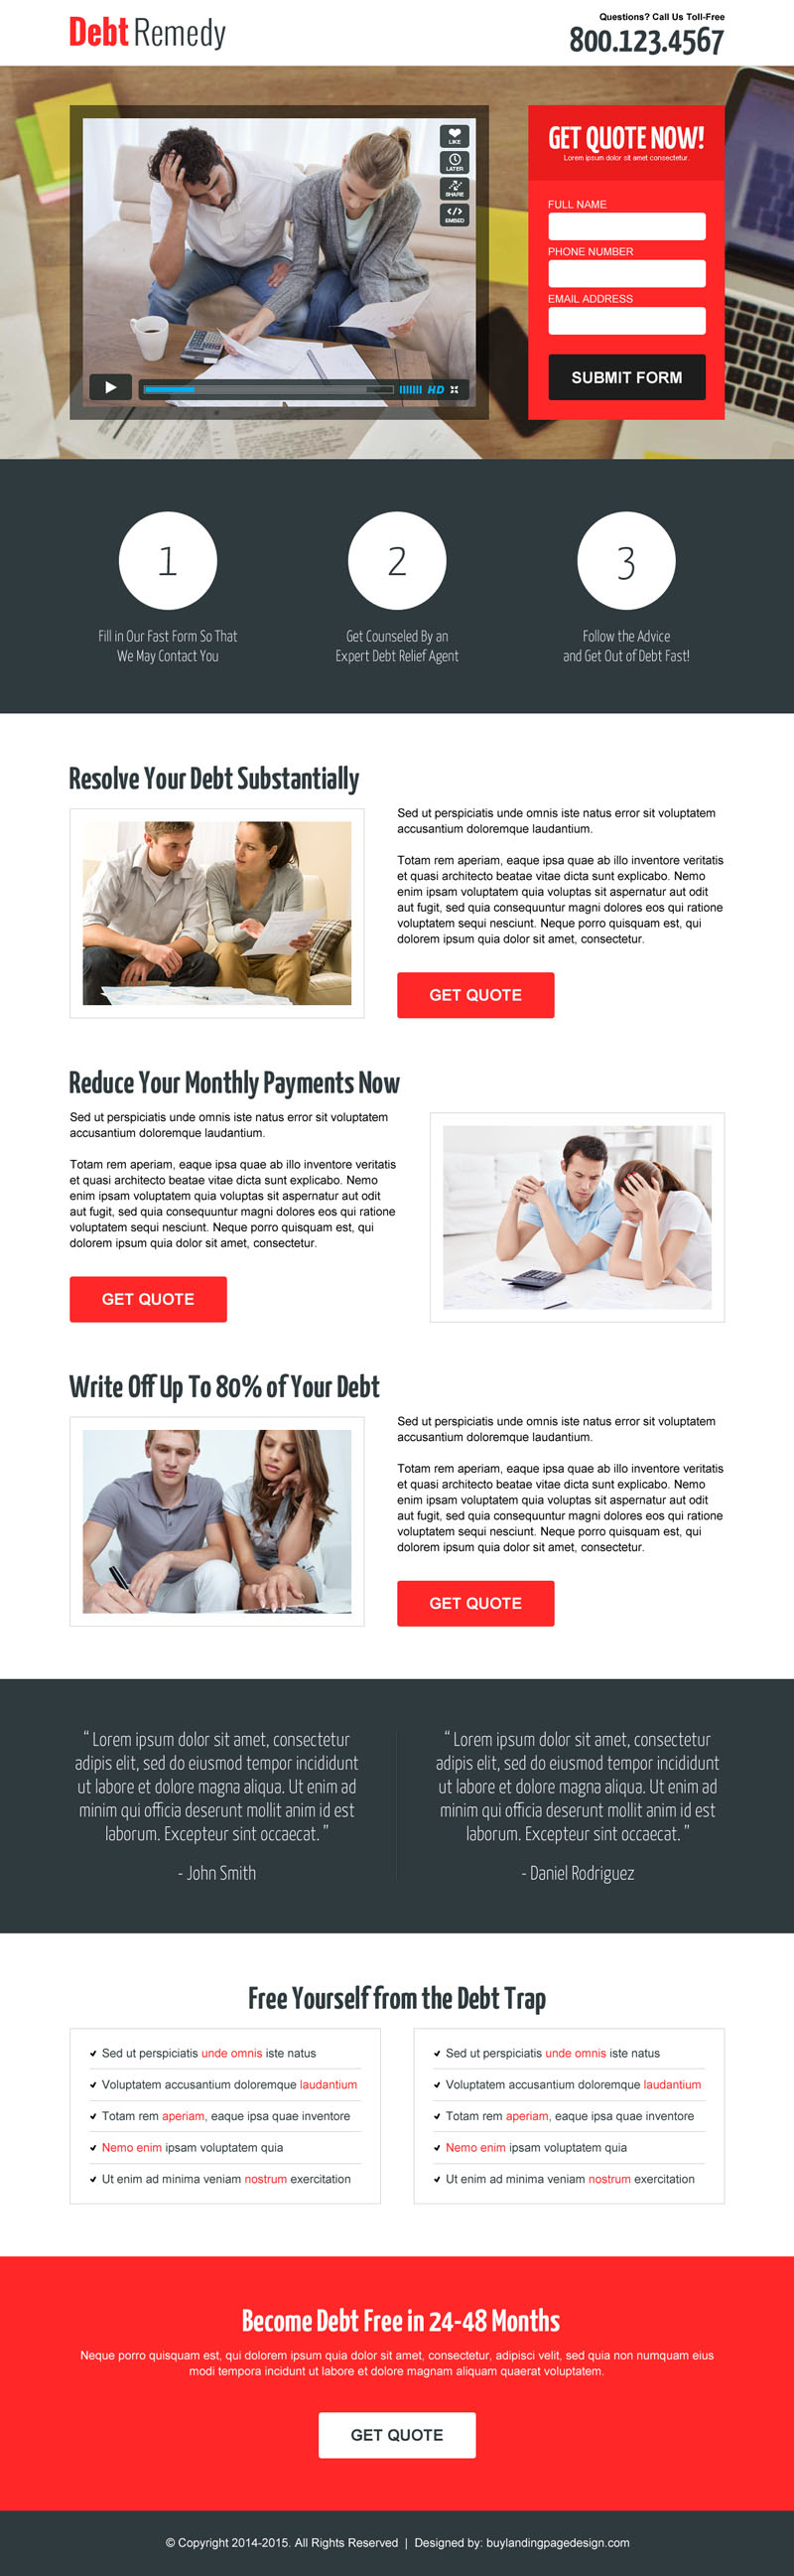 debt-lead-capture-video-landing-page-design-template-to-capture-maximum-leads-for-debt-relief-business-040